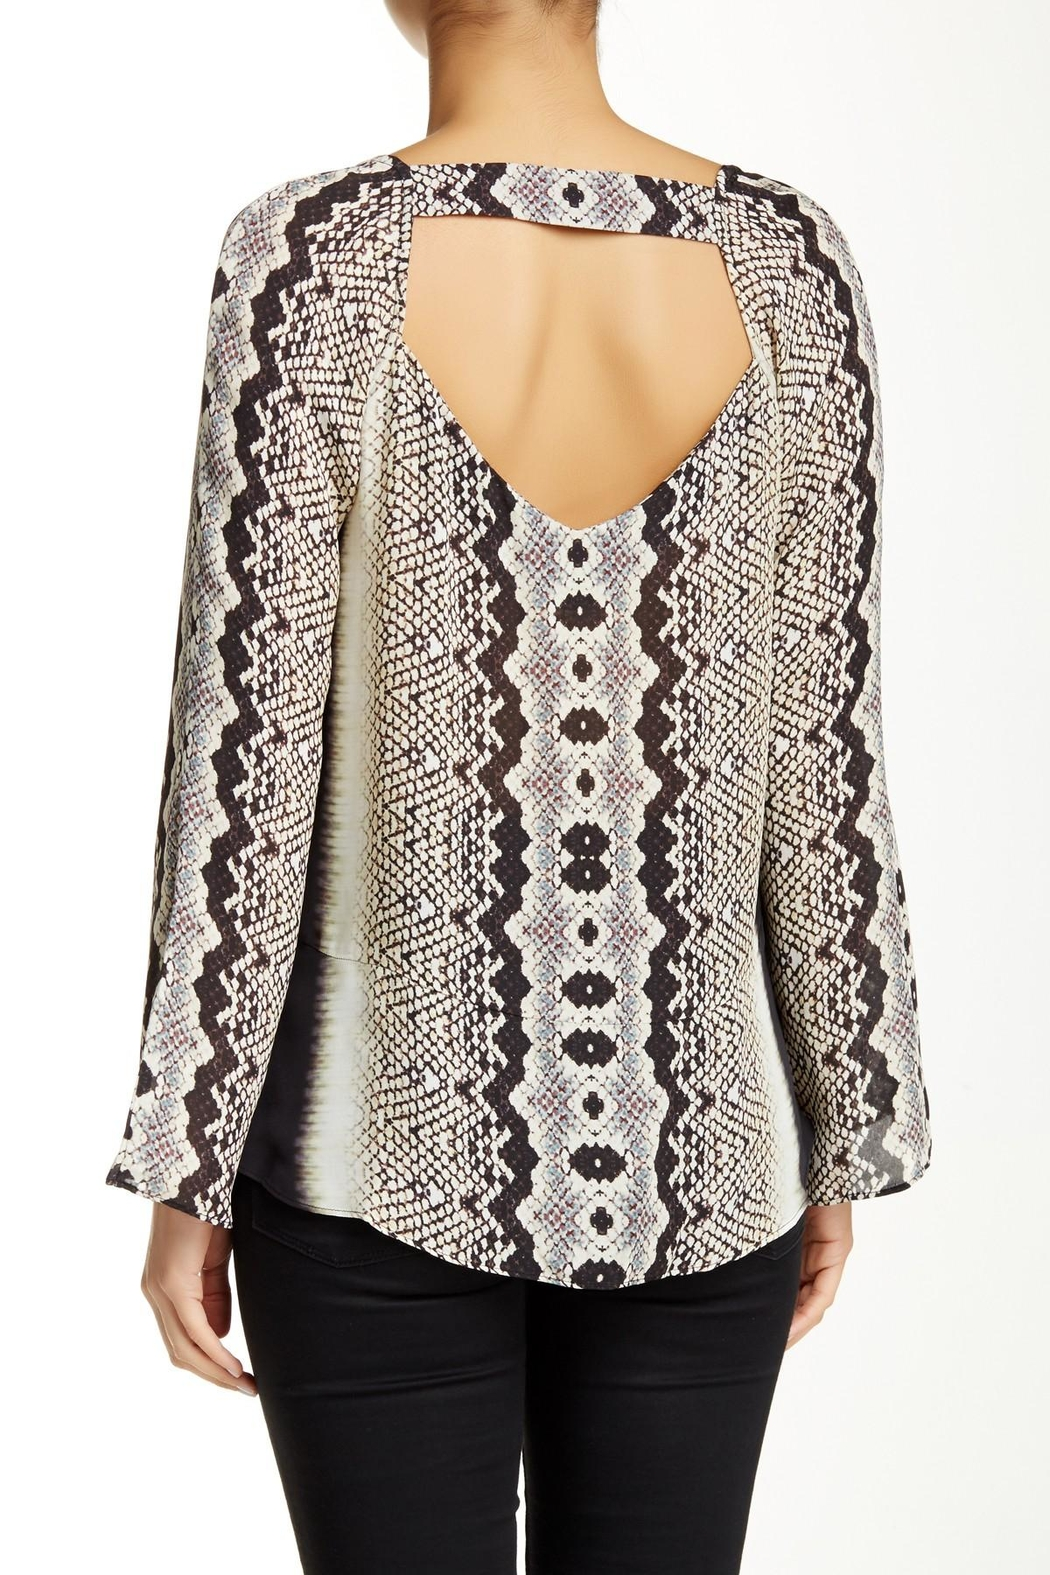 Nicole Miller Open-Back Printed Blouse - Main Image